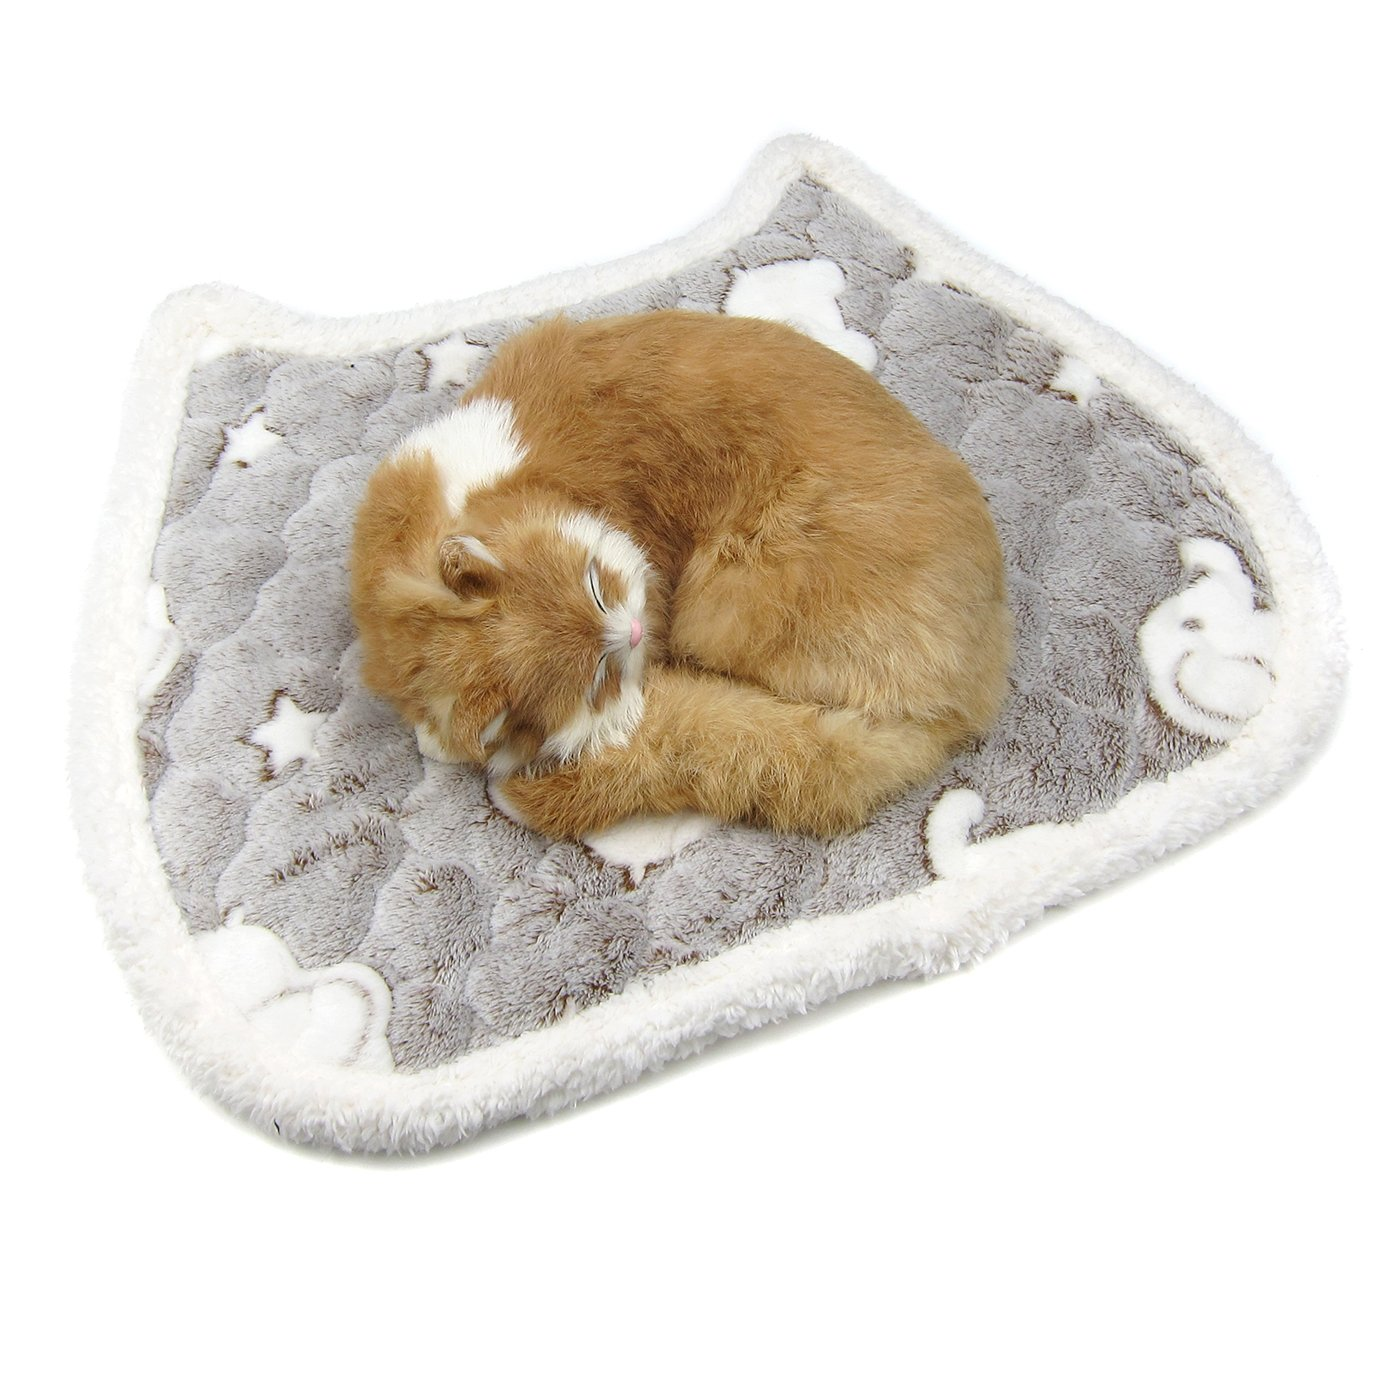 Alfie Pet by Petoga Couture - McKenna Self Warming Fleece Sleeping Mat for Dogs and Cats - Color: Grey